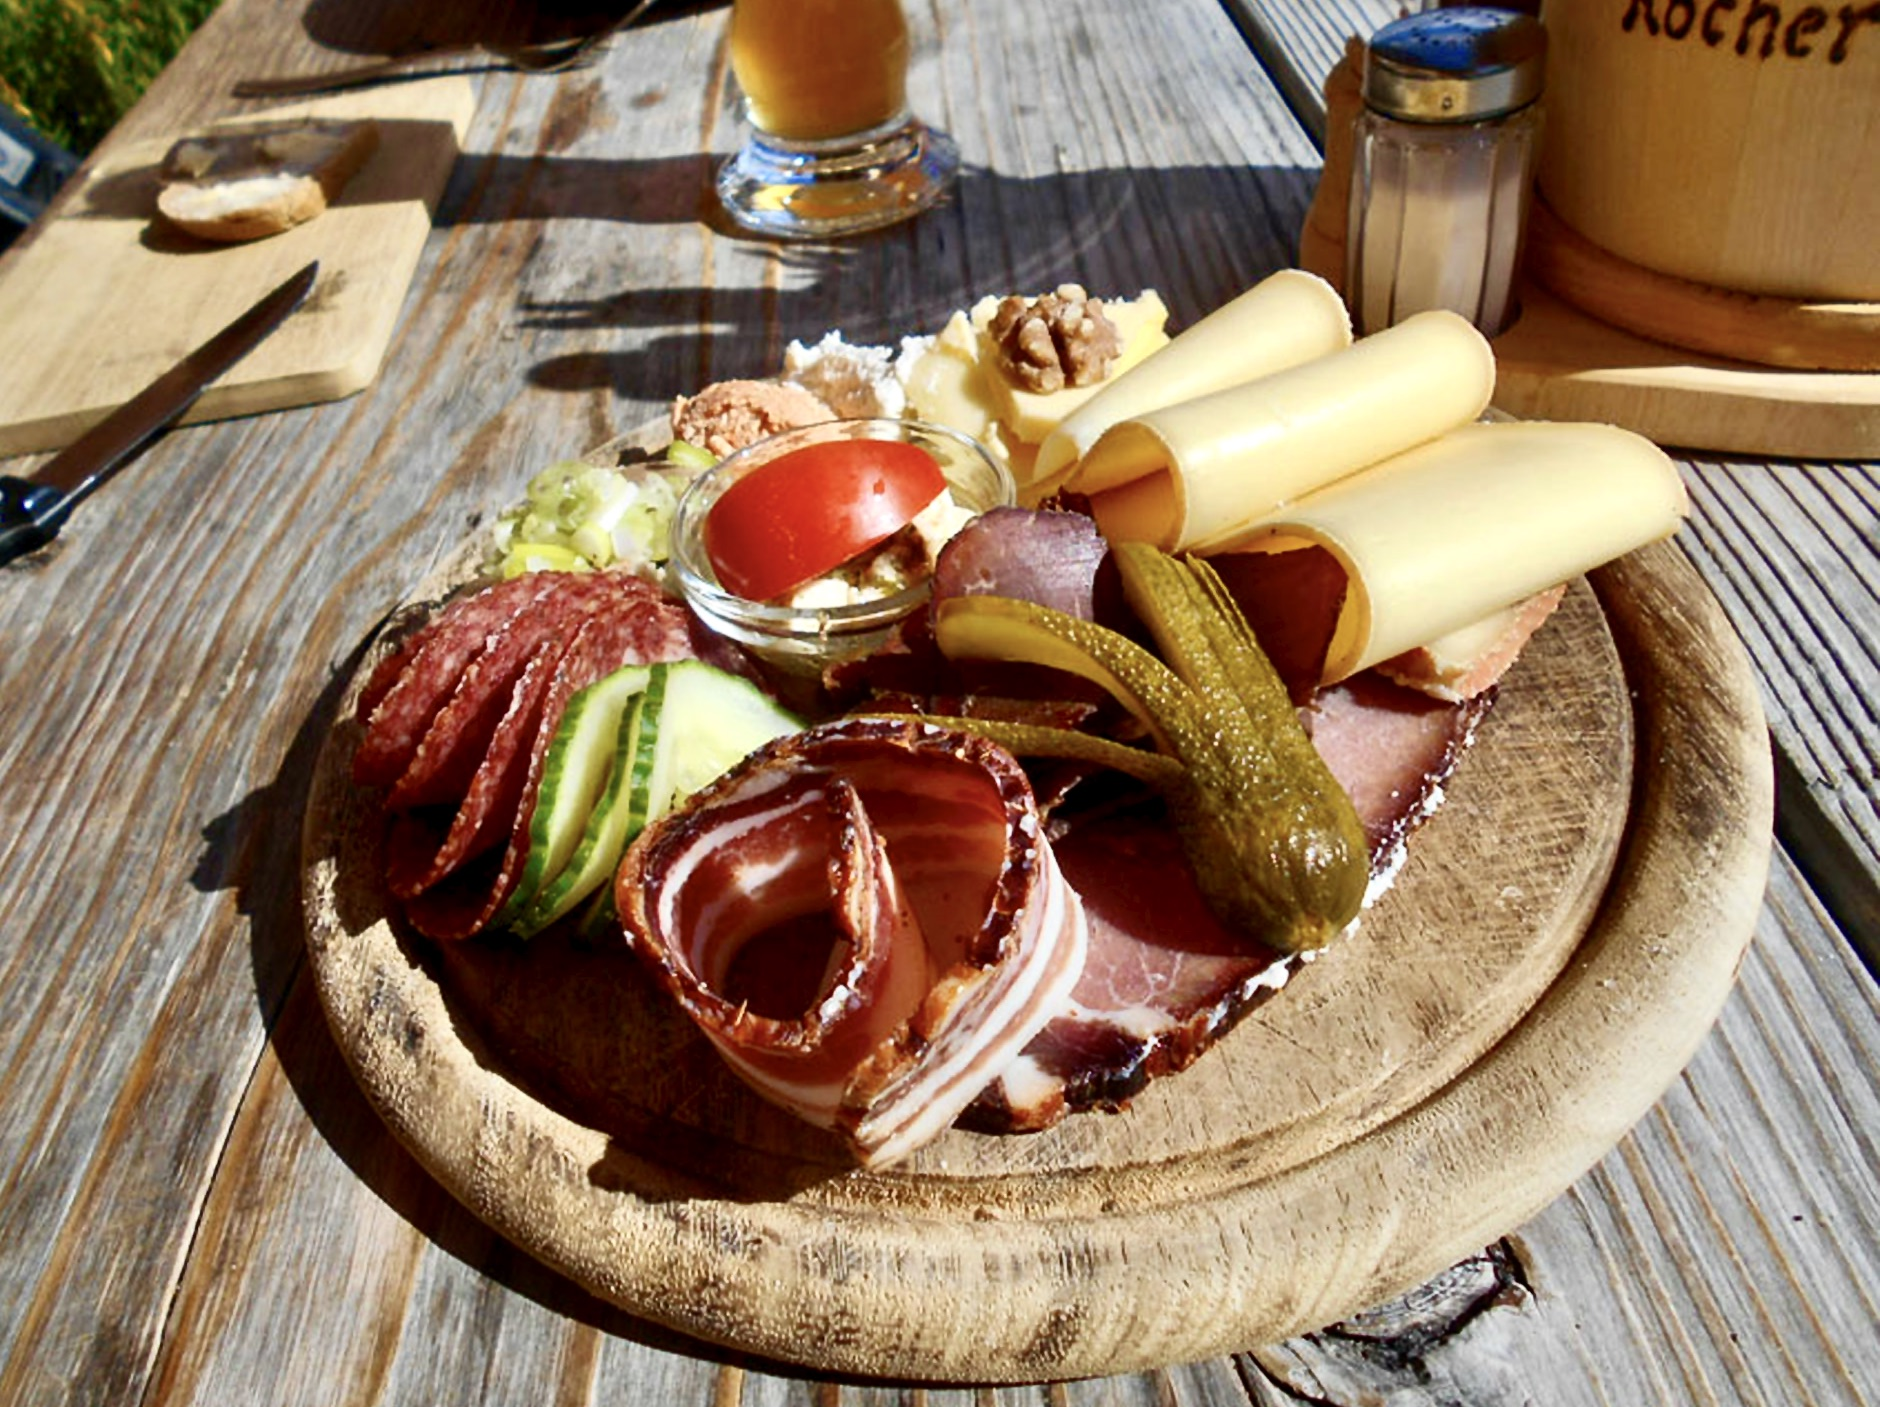 Austrian lunch of alpine cheese and smoked meats